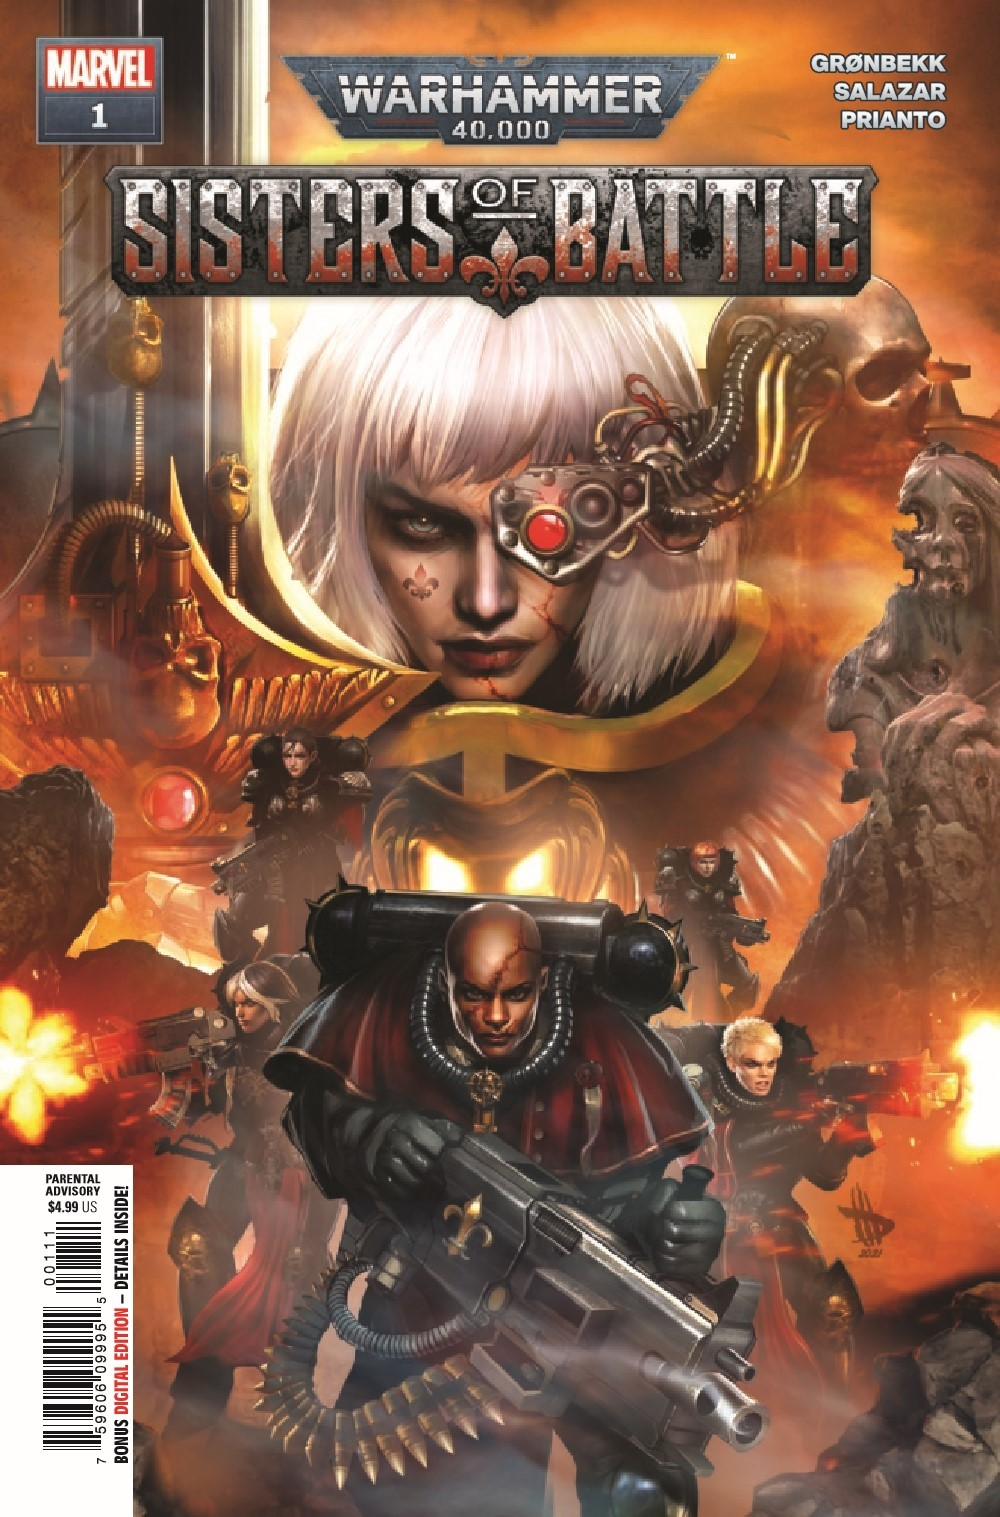 WARHAMMERSOB2021001_Preview-1 ComicList Previews: WARHAMMER 40000 SISTERS OF BATTLE #1 (OF 5)